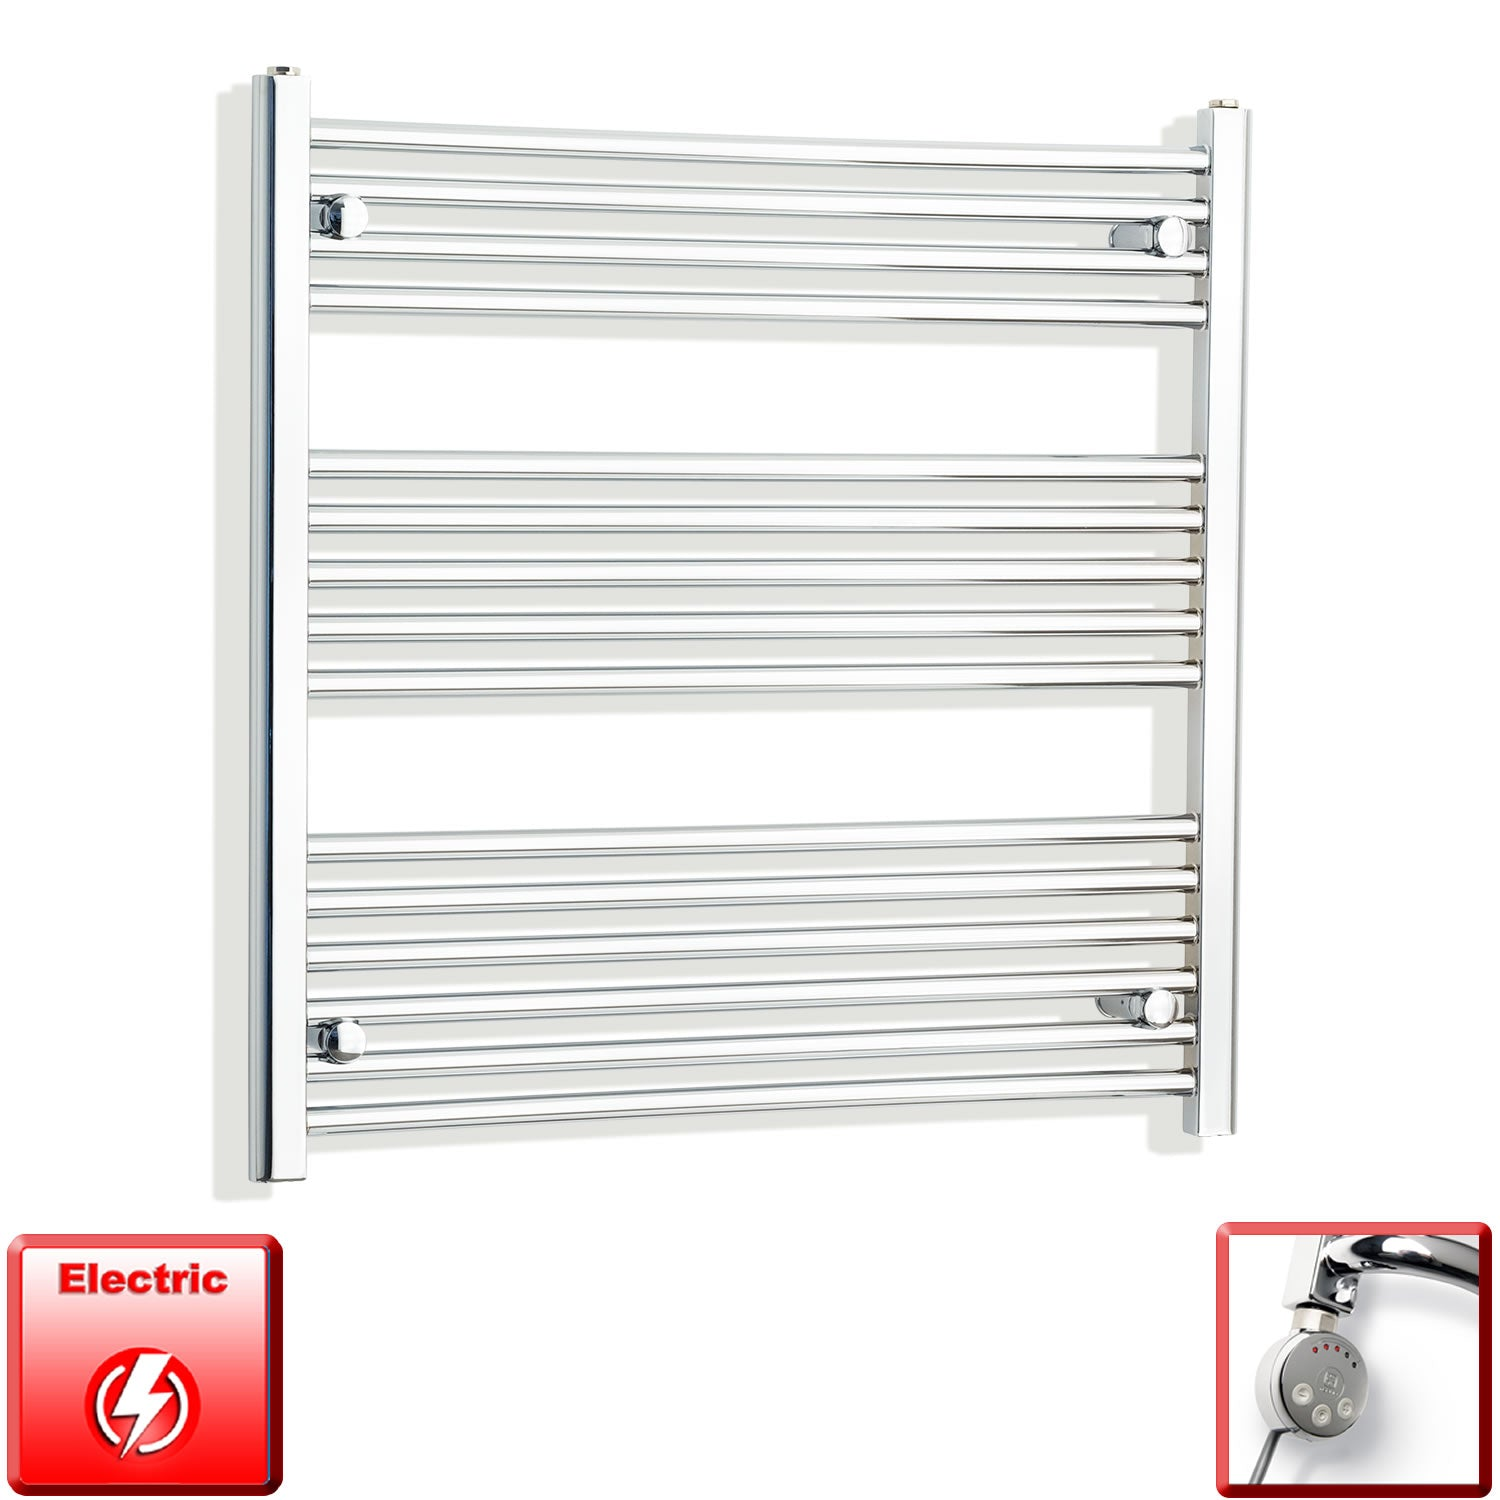 900mm Wide 800mm High Pre-Filled Chrome Electric Towel Rail Radiator With Thermostatic MEG Element